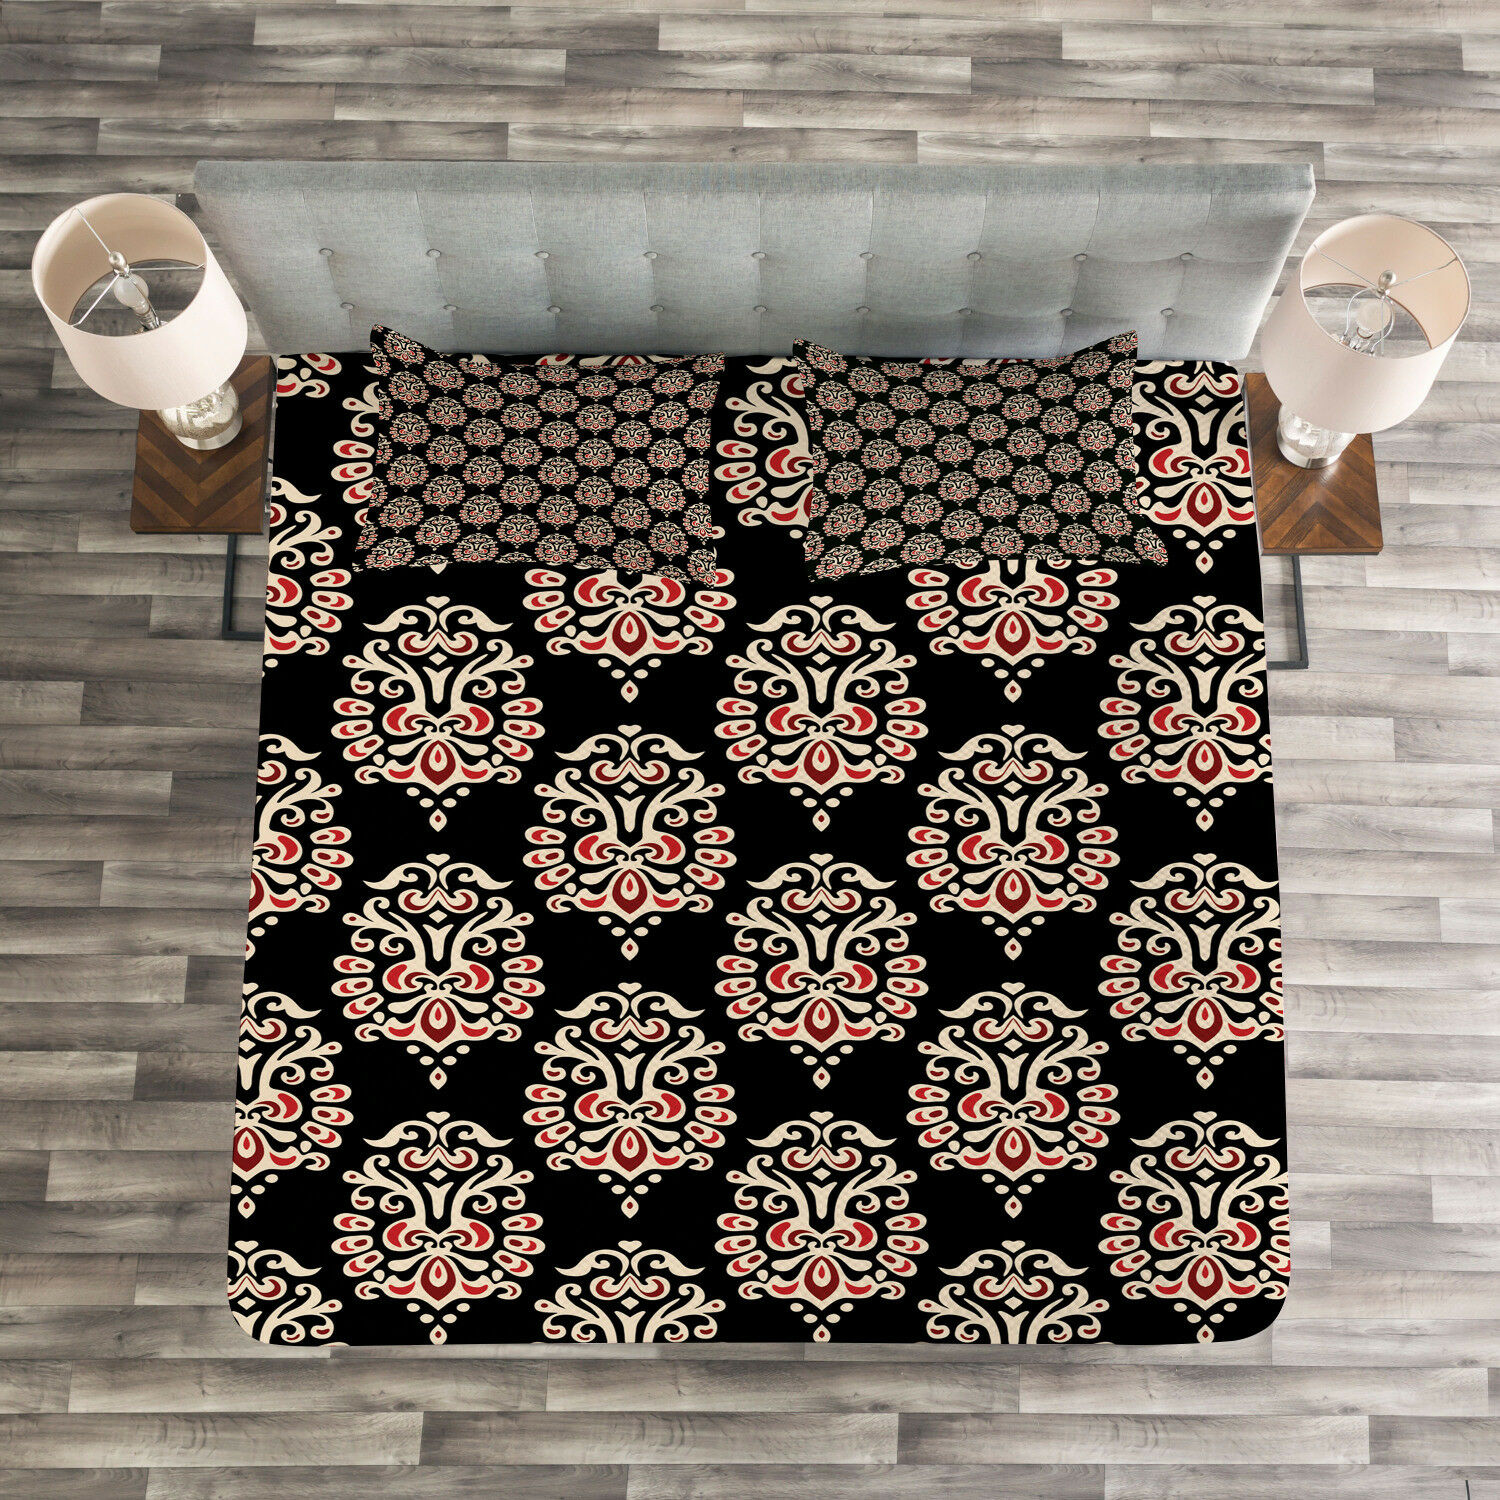 Damask Quilted Bedspread & Pillow Shams Set, Traditional Abstract Print